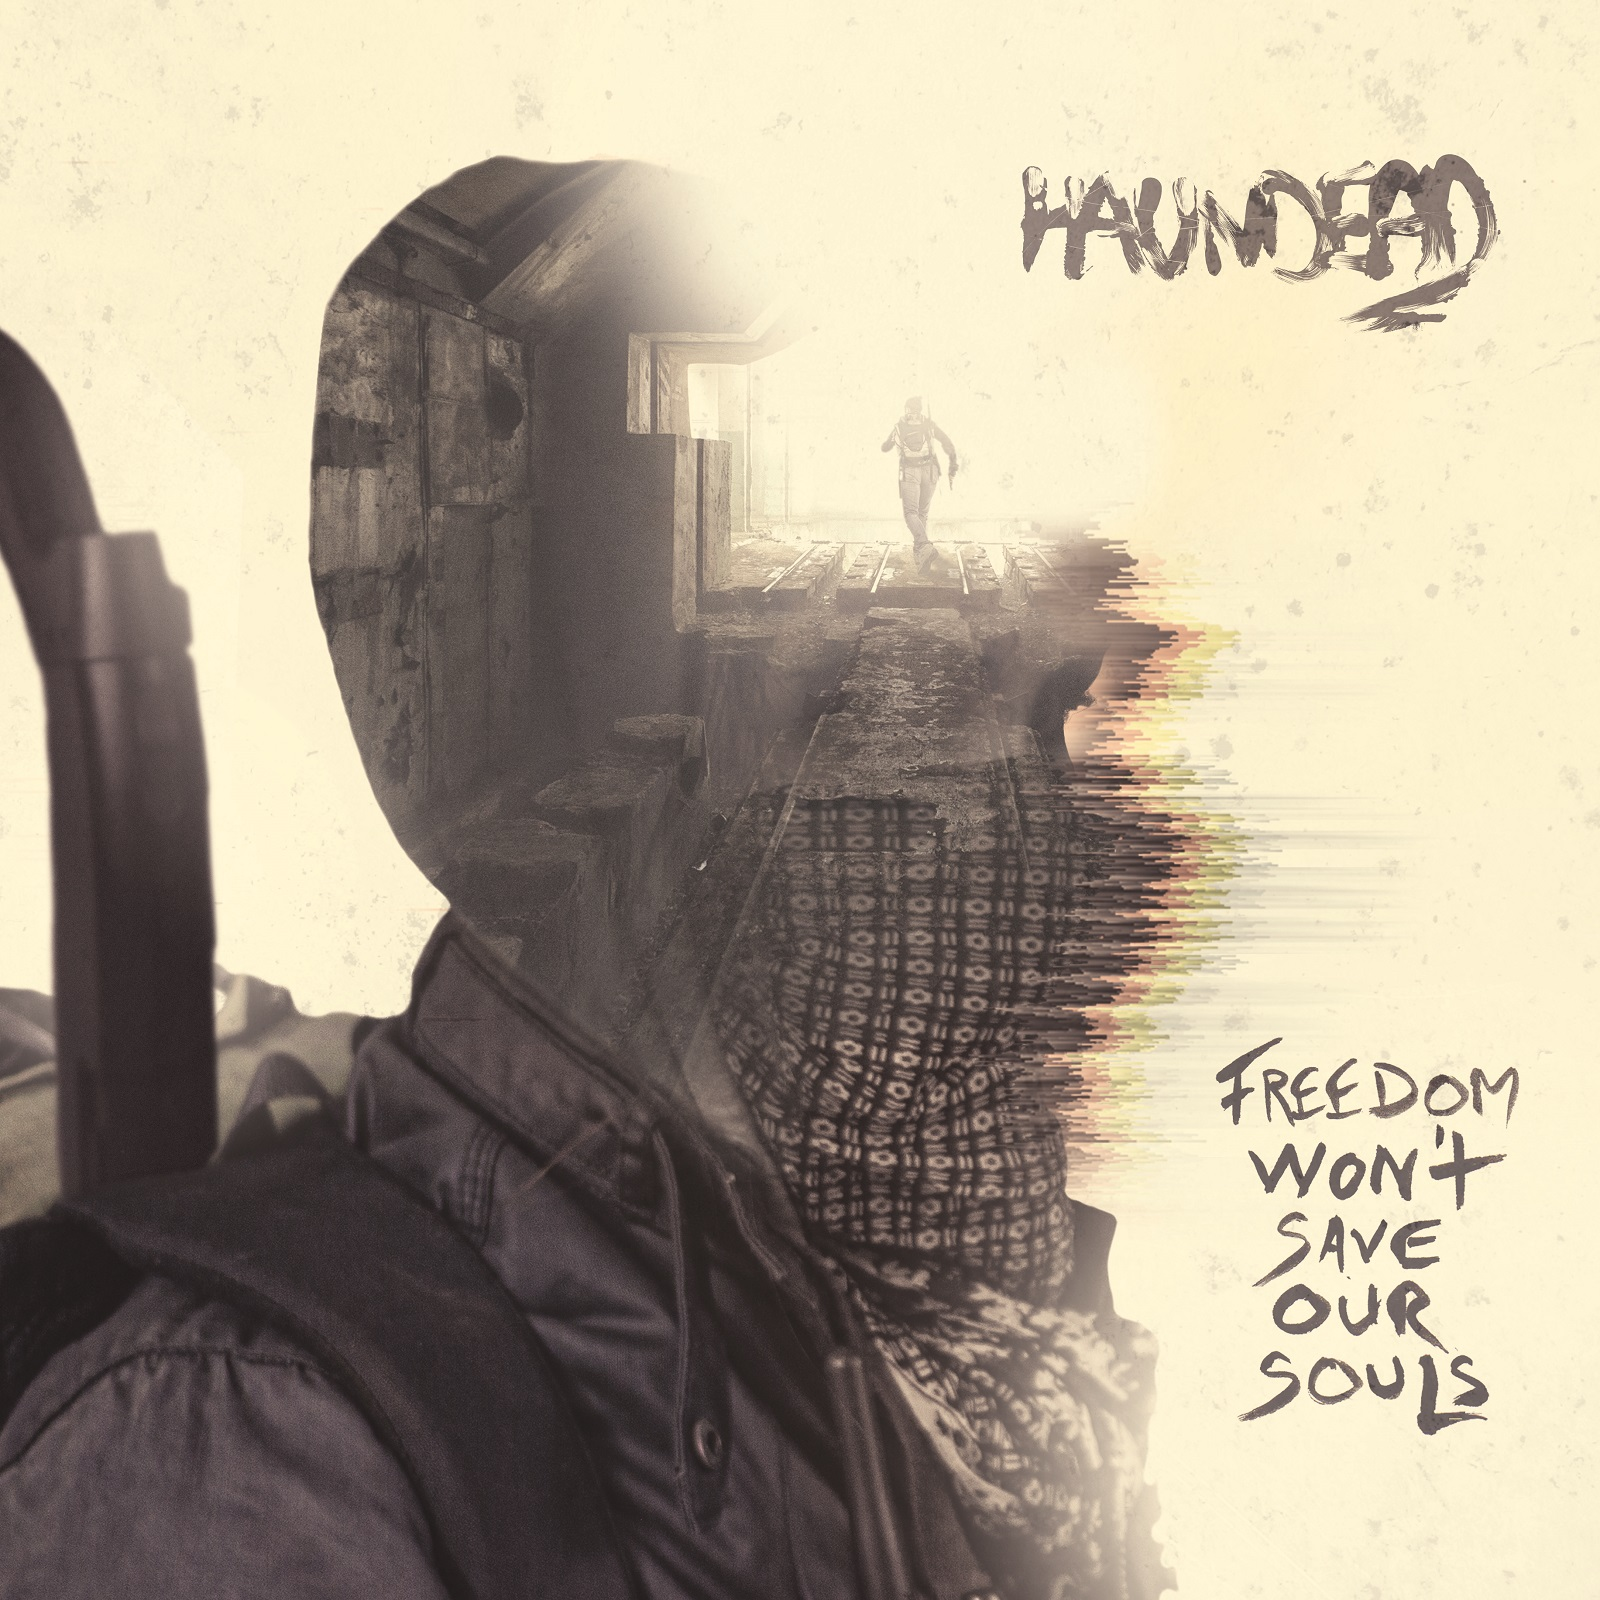 Haundead - Freedom Won't Save Our Souls